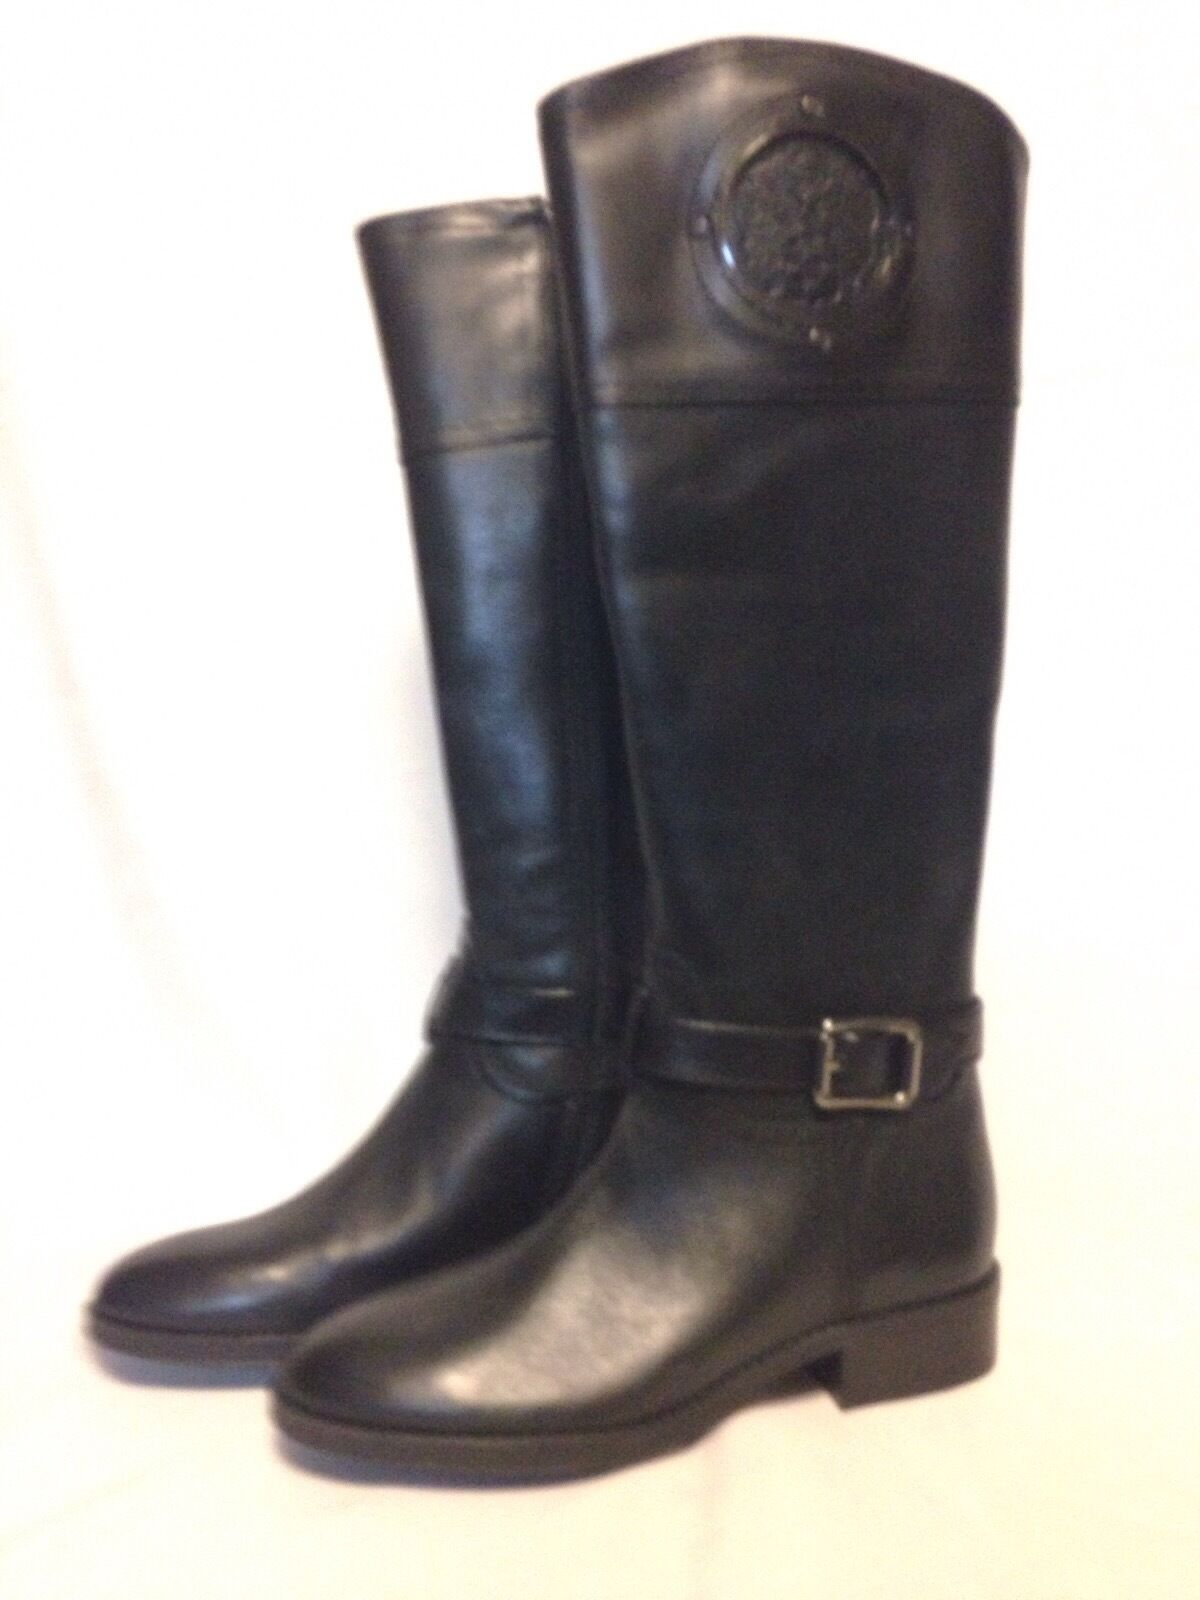 Vince Camuto Phillie Tall Boot 5.5 M Black Silky Leather New with Box